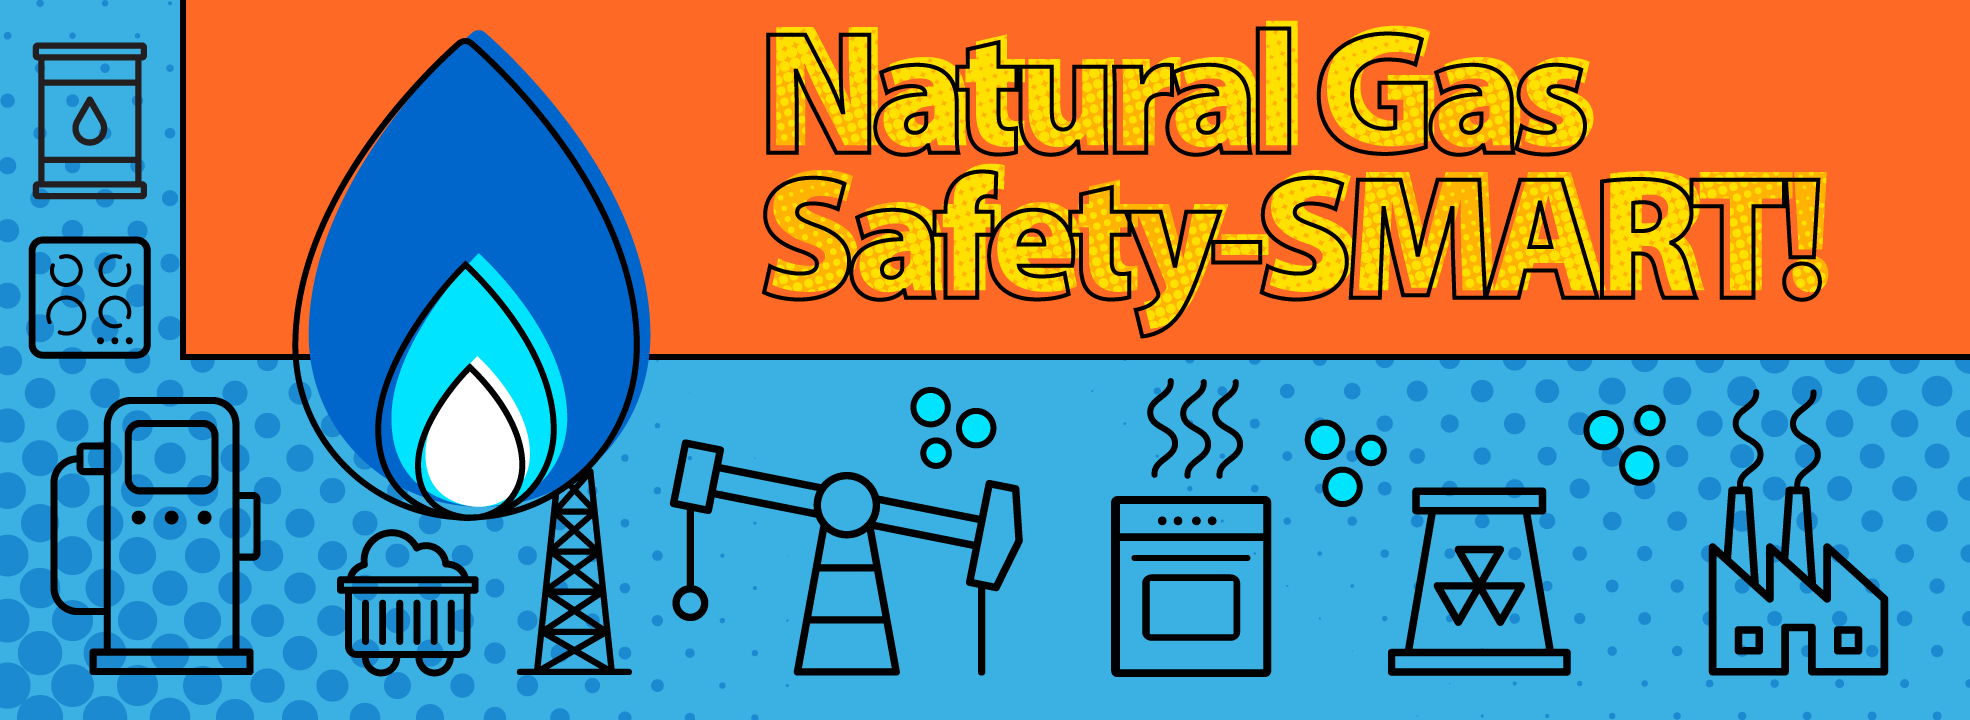 Natural Gas Safety-SMART